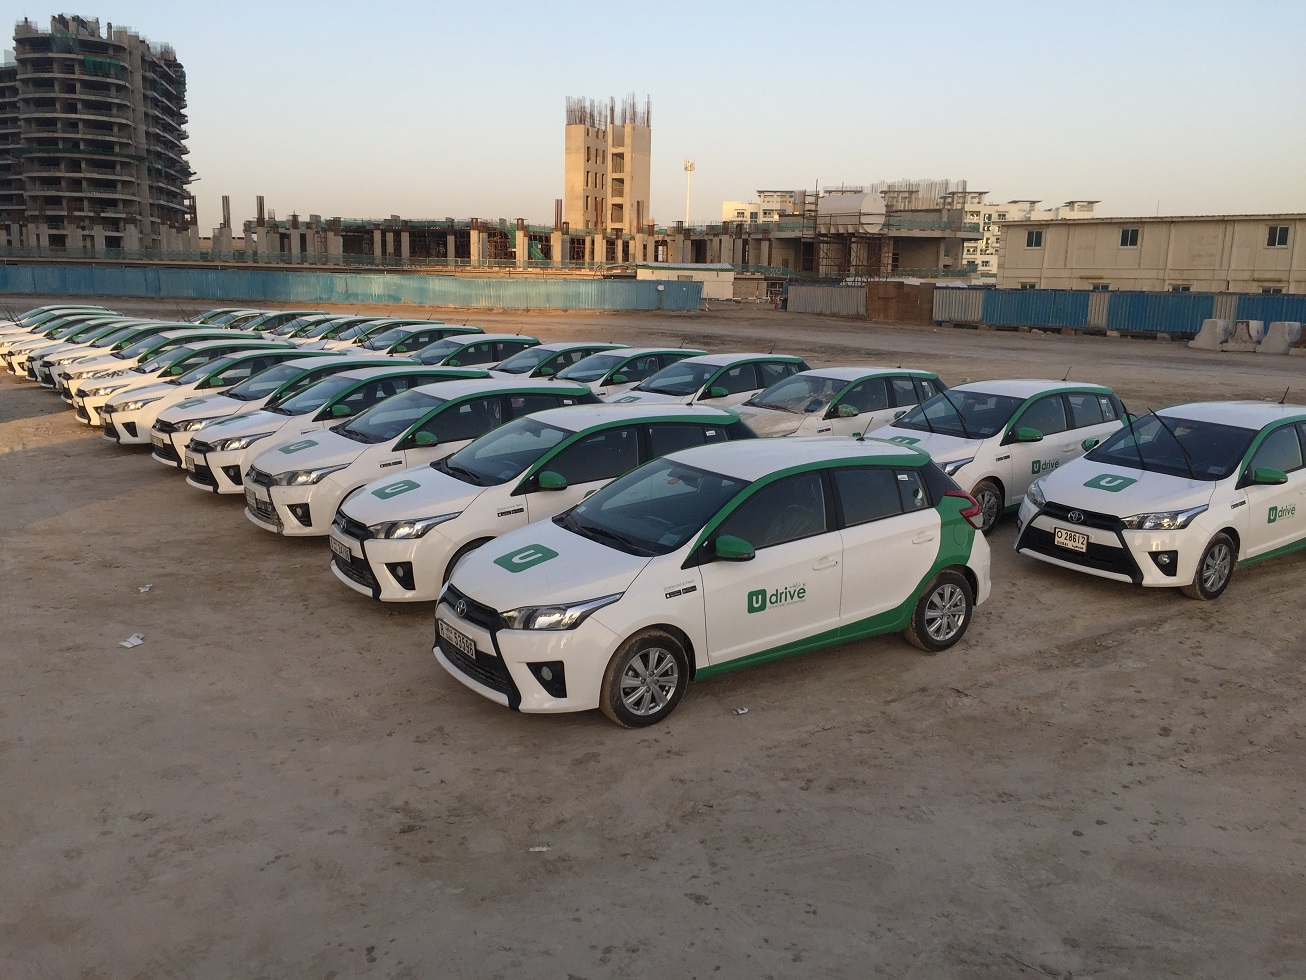 RTA Launches Smart Car Rental Service That Bills by the Minute